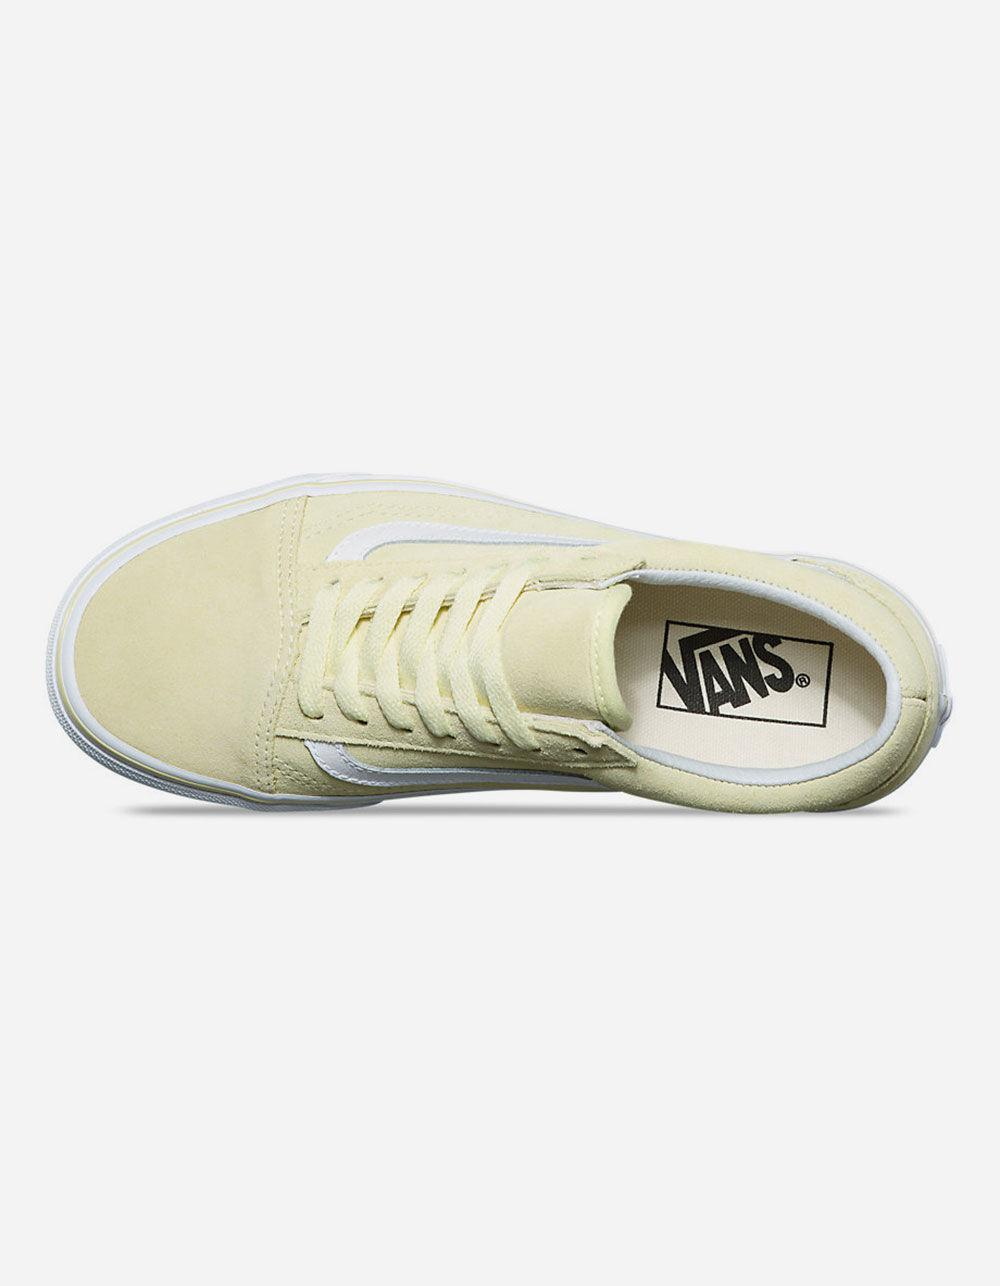 Vans - Old Skool Suede Tender Yellow   True White Womens Shoes - Lyst. View  fullscreen e36daf87d